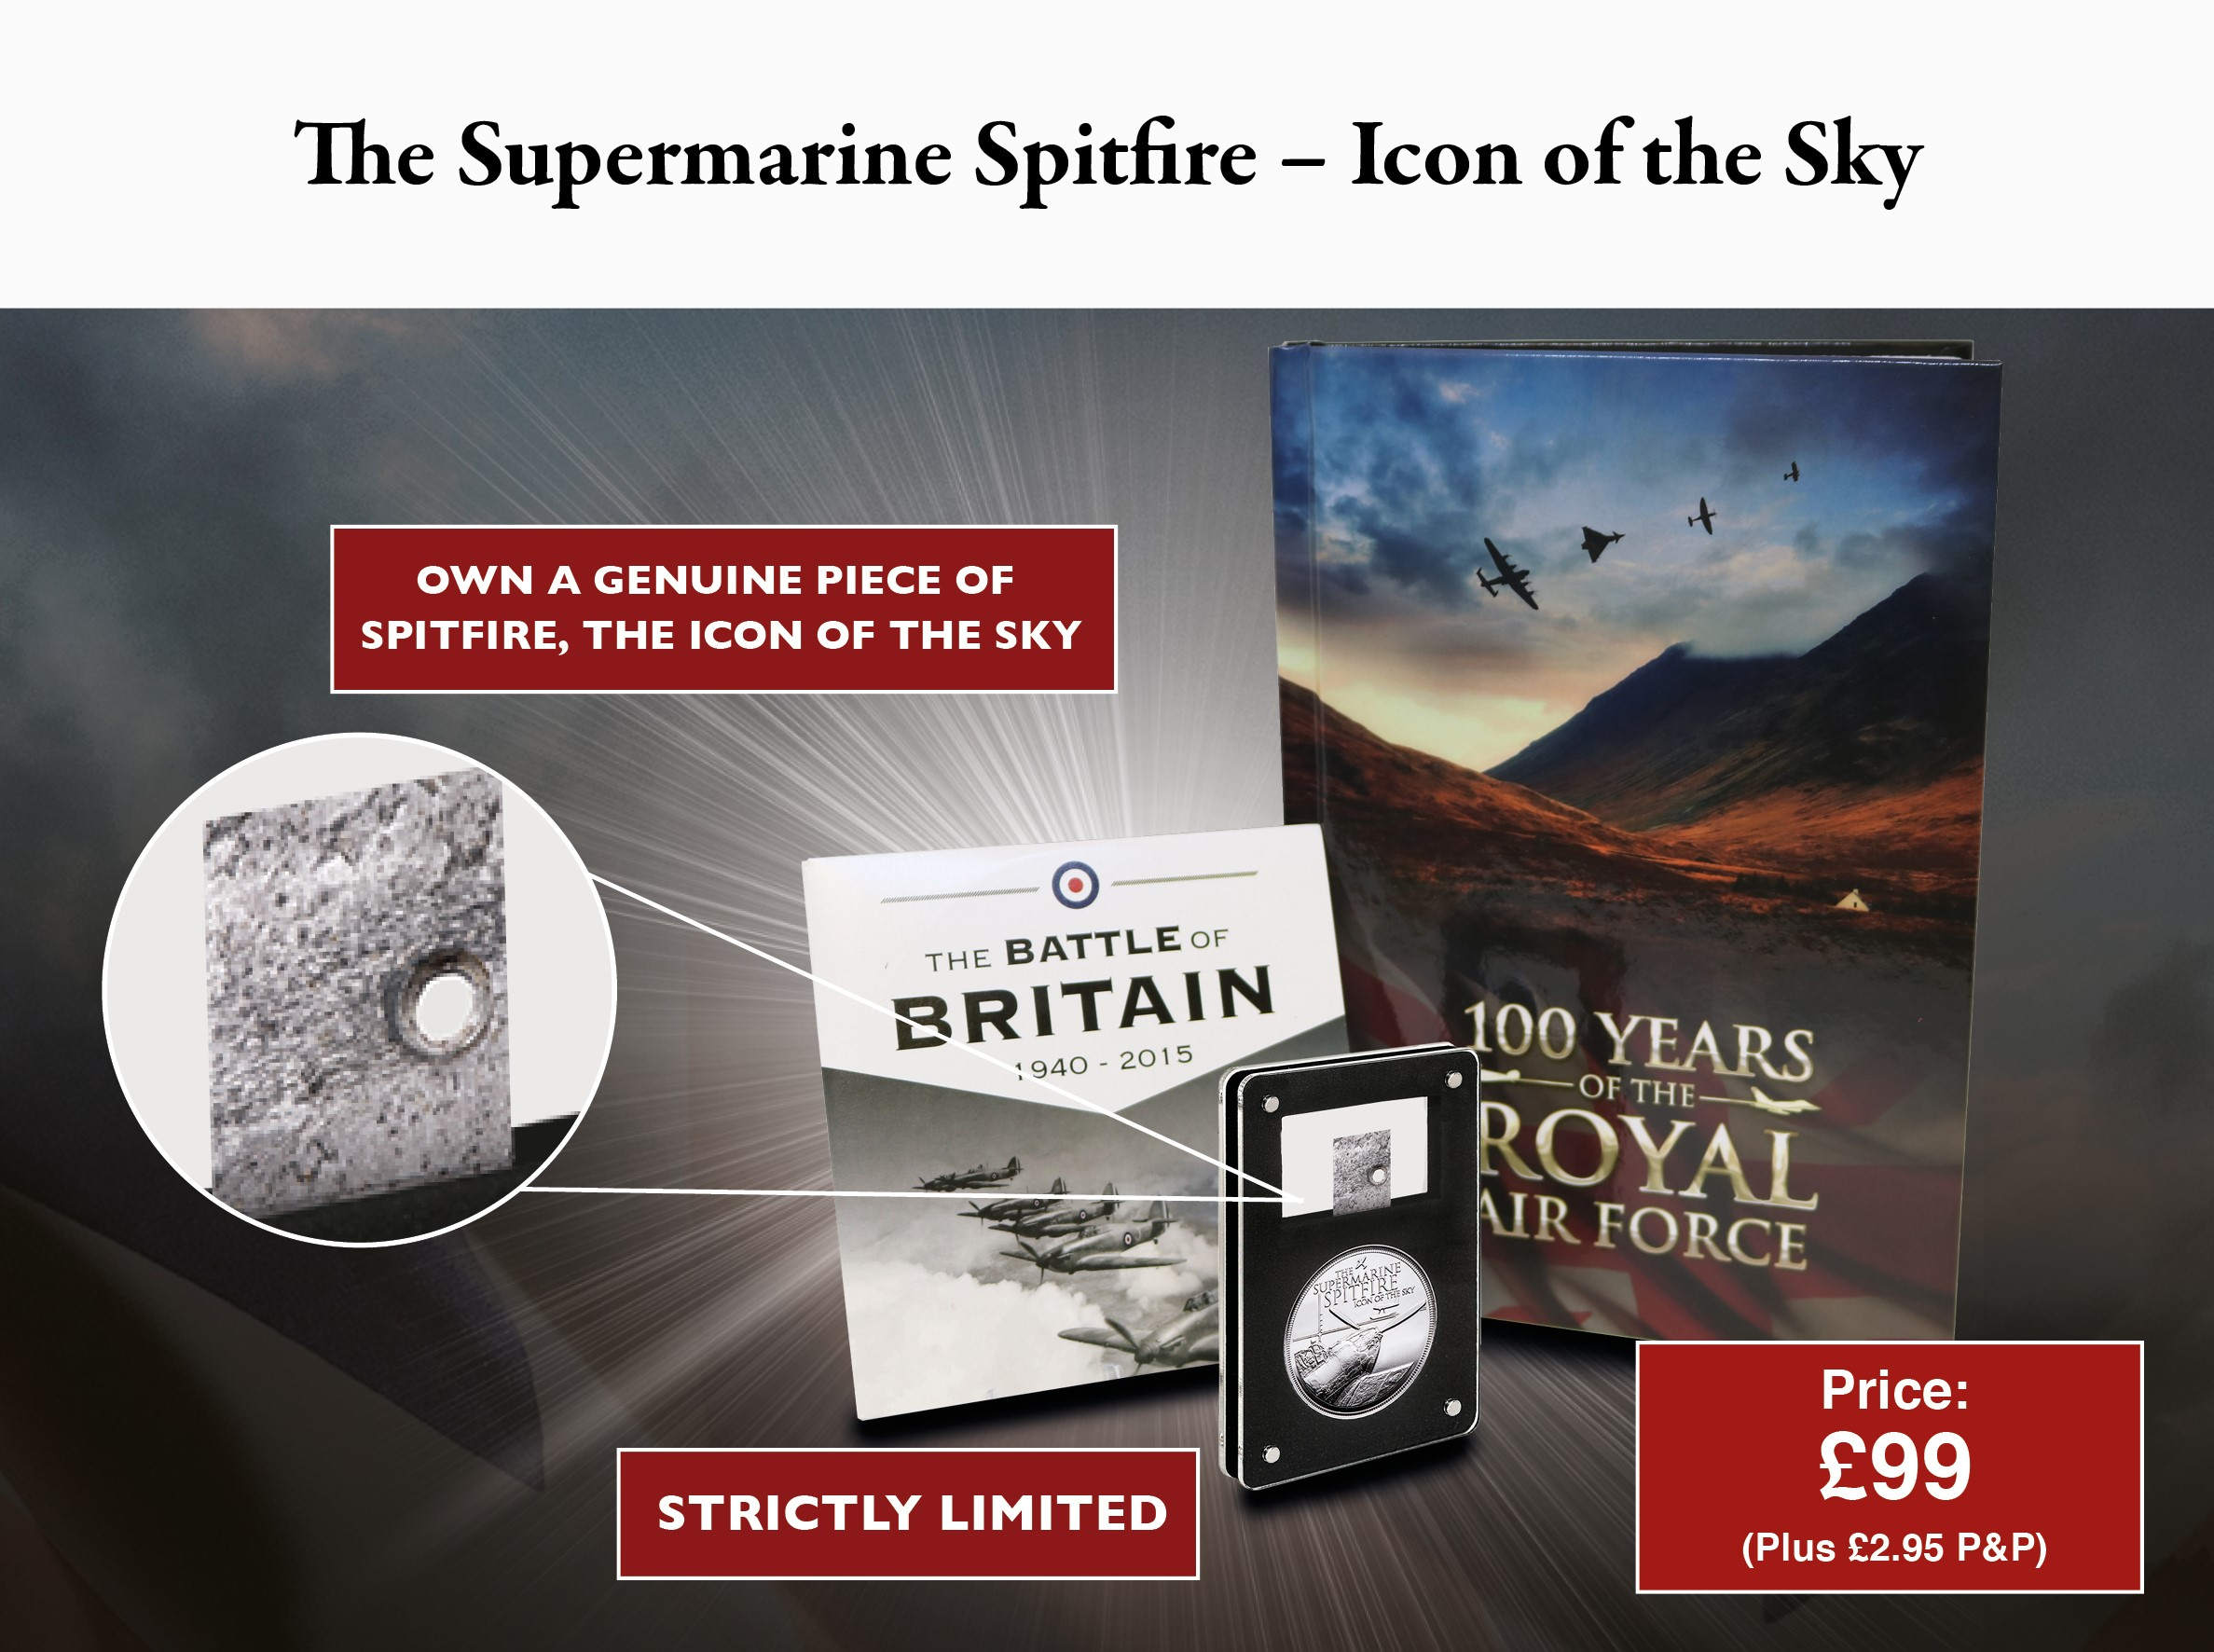 The Supermarine Spitfire 'Icon of the Sky' Commemorative Set'